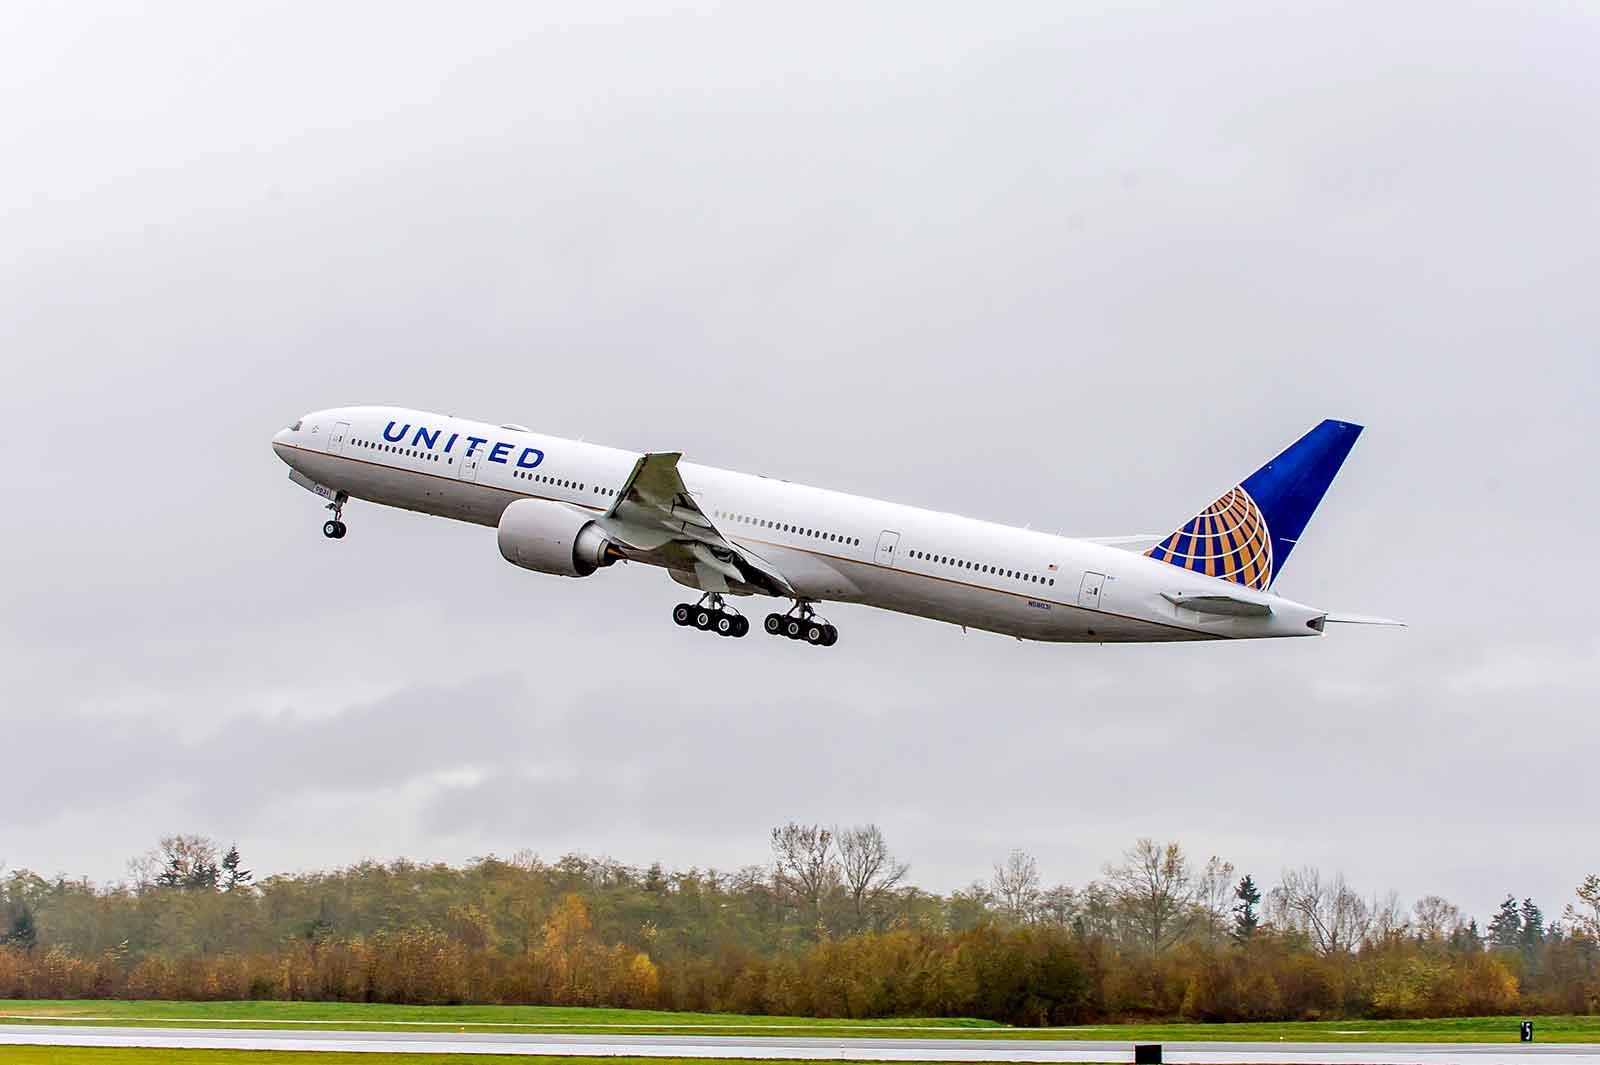 United Airlines Boeing 777-300ER with latest Polaris Business Class Seats